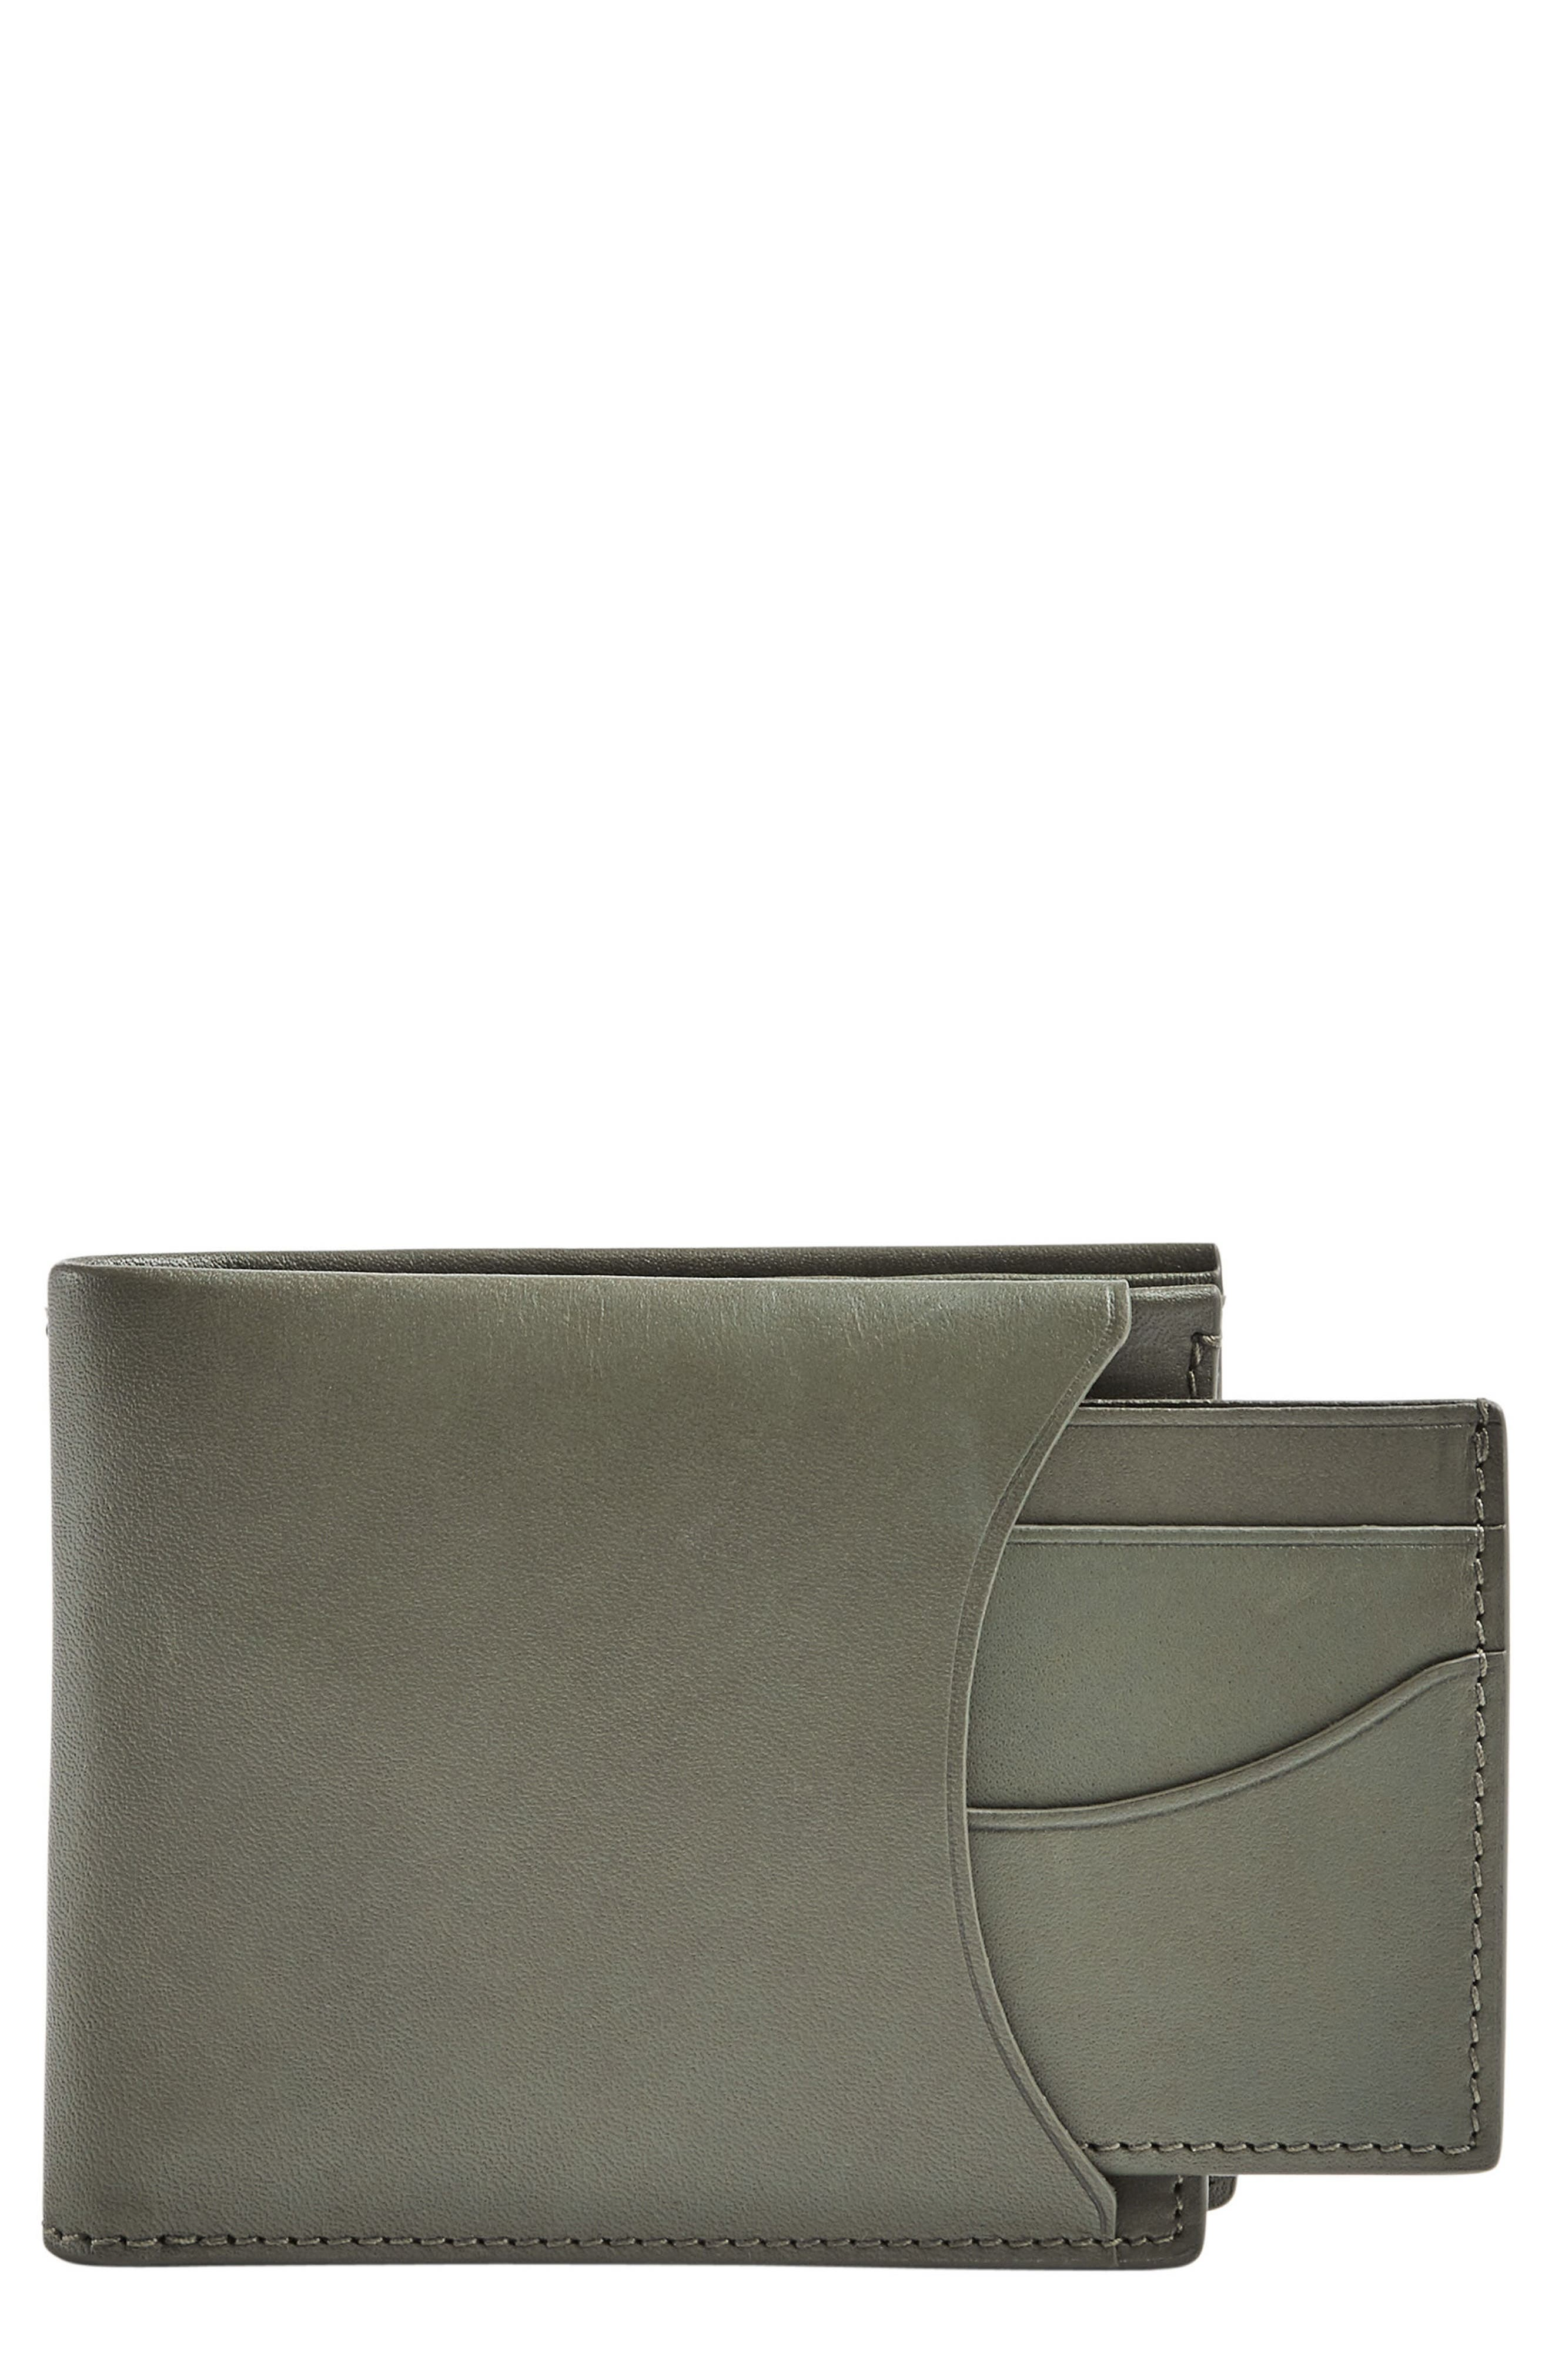 Leather Passcase Wallet,                         Main,                         color, Agave